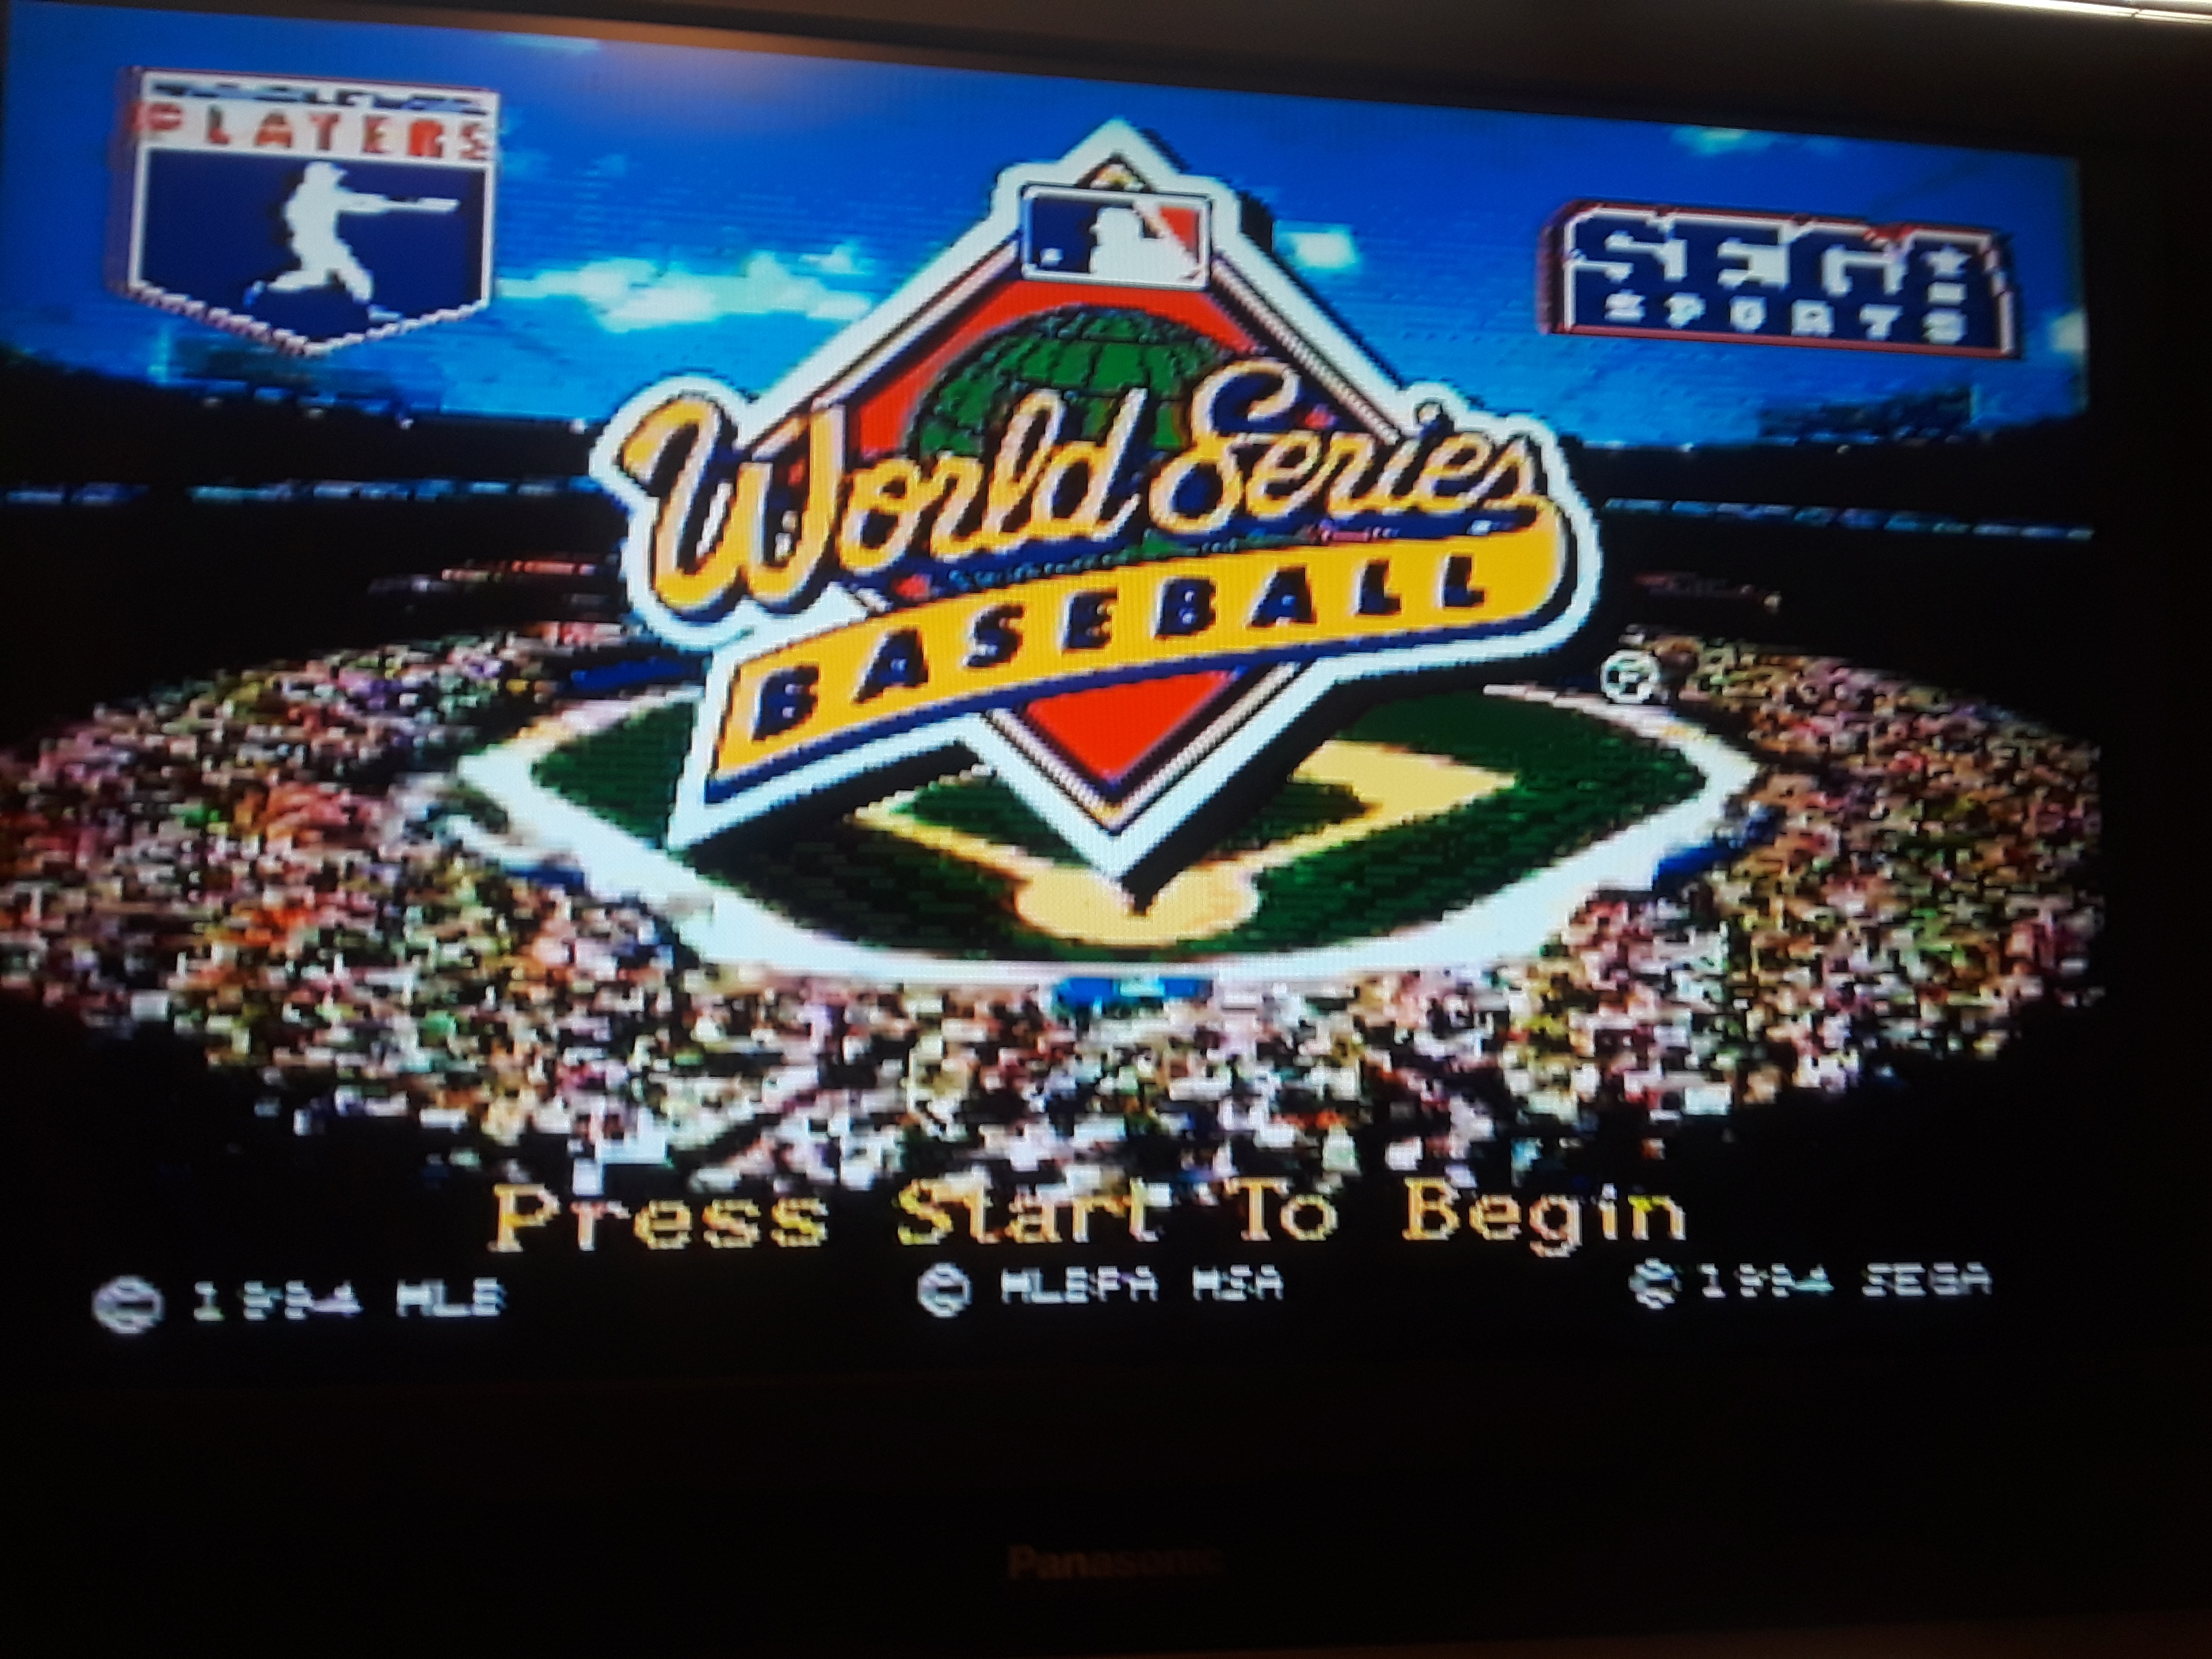 World Series Baseball: Home Run Derby 2 points